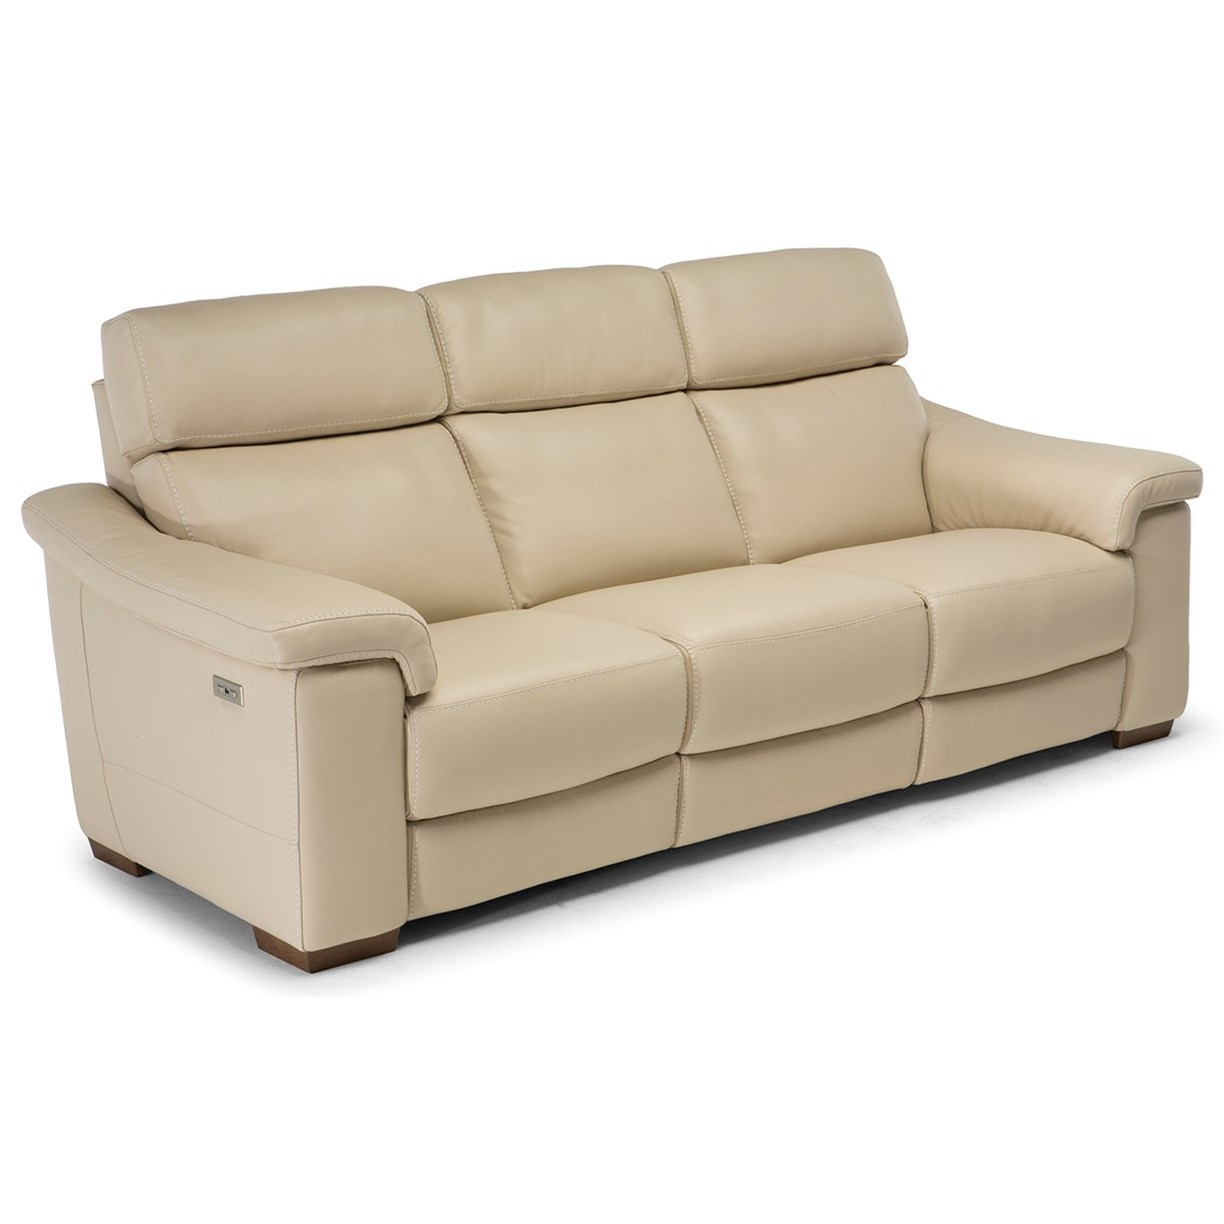 Our editors independently research, test, and recommend the best products; Natuzzi Editions Giulivo Casual Power Reclining Sofa with ...